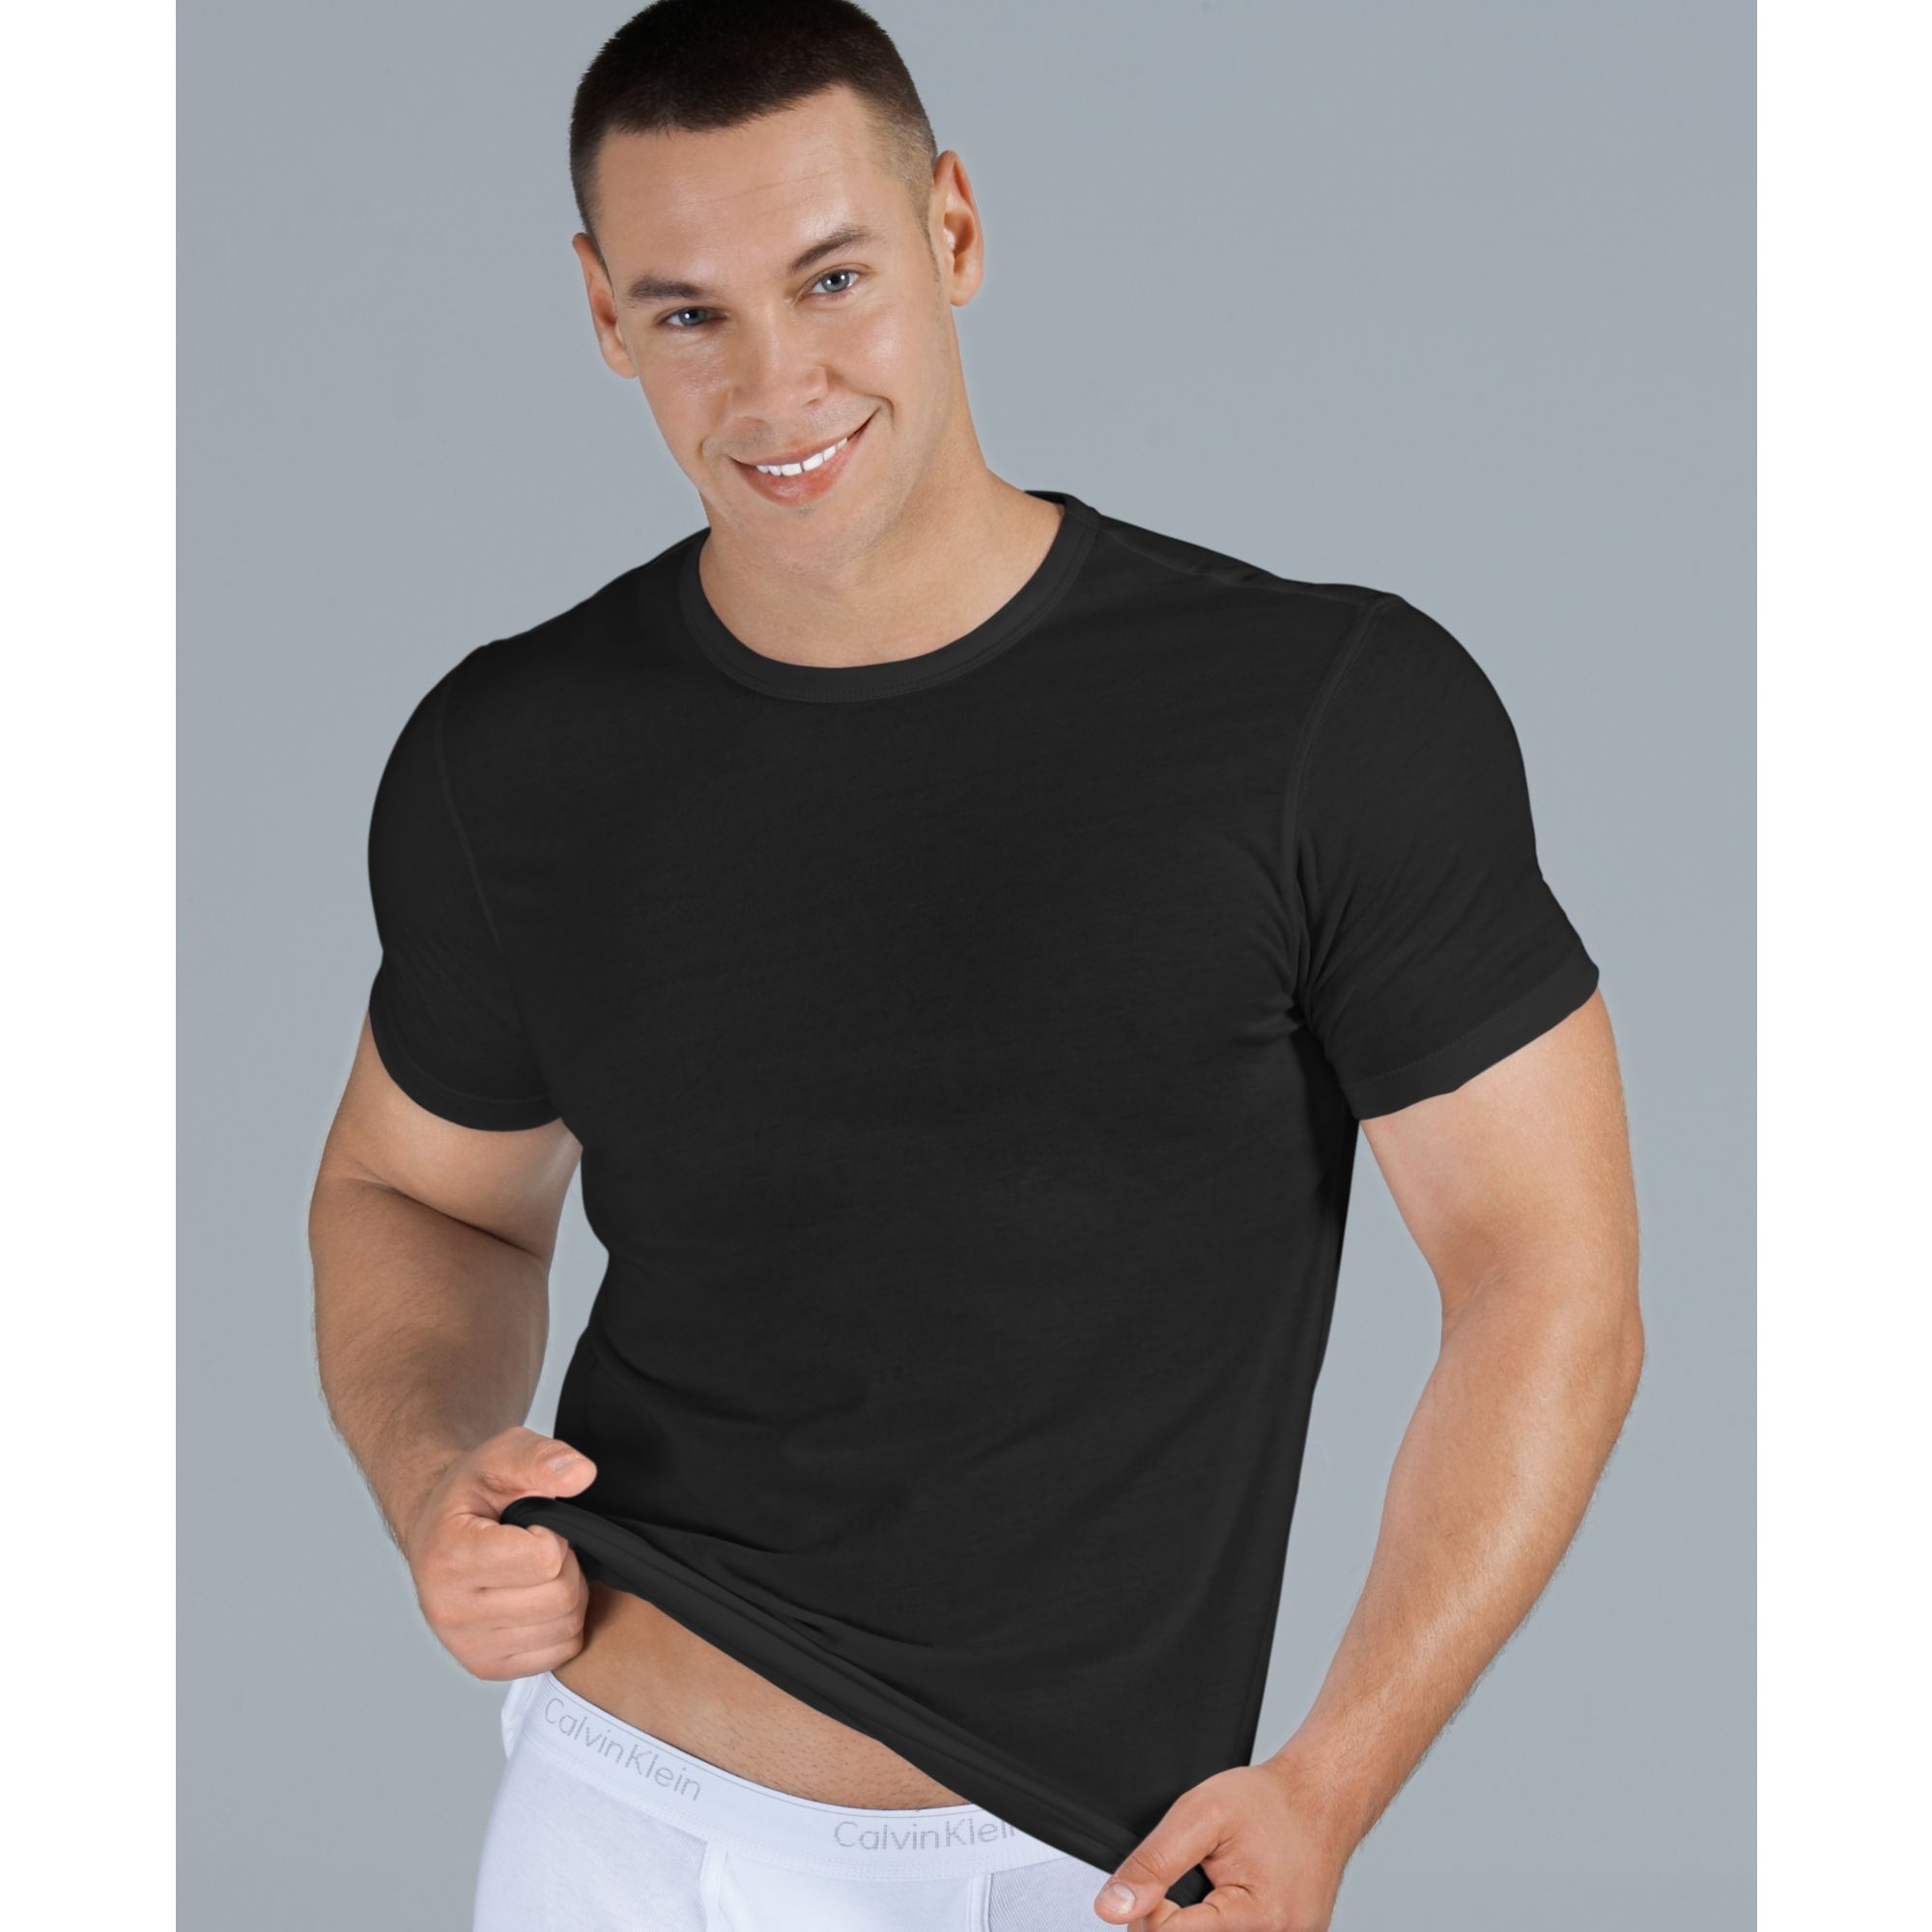 calvin klein body slim fit t shirt 3 pack in black for men